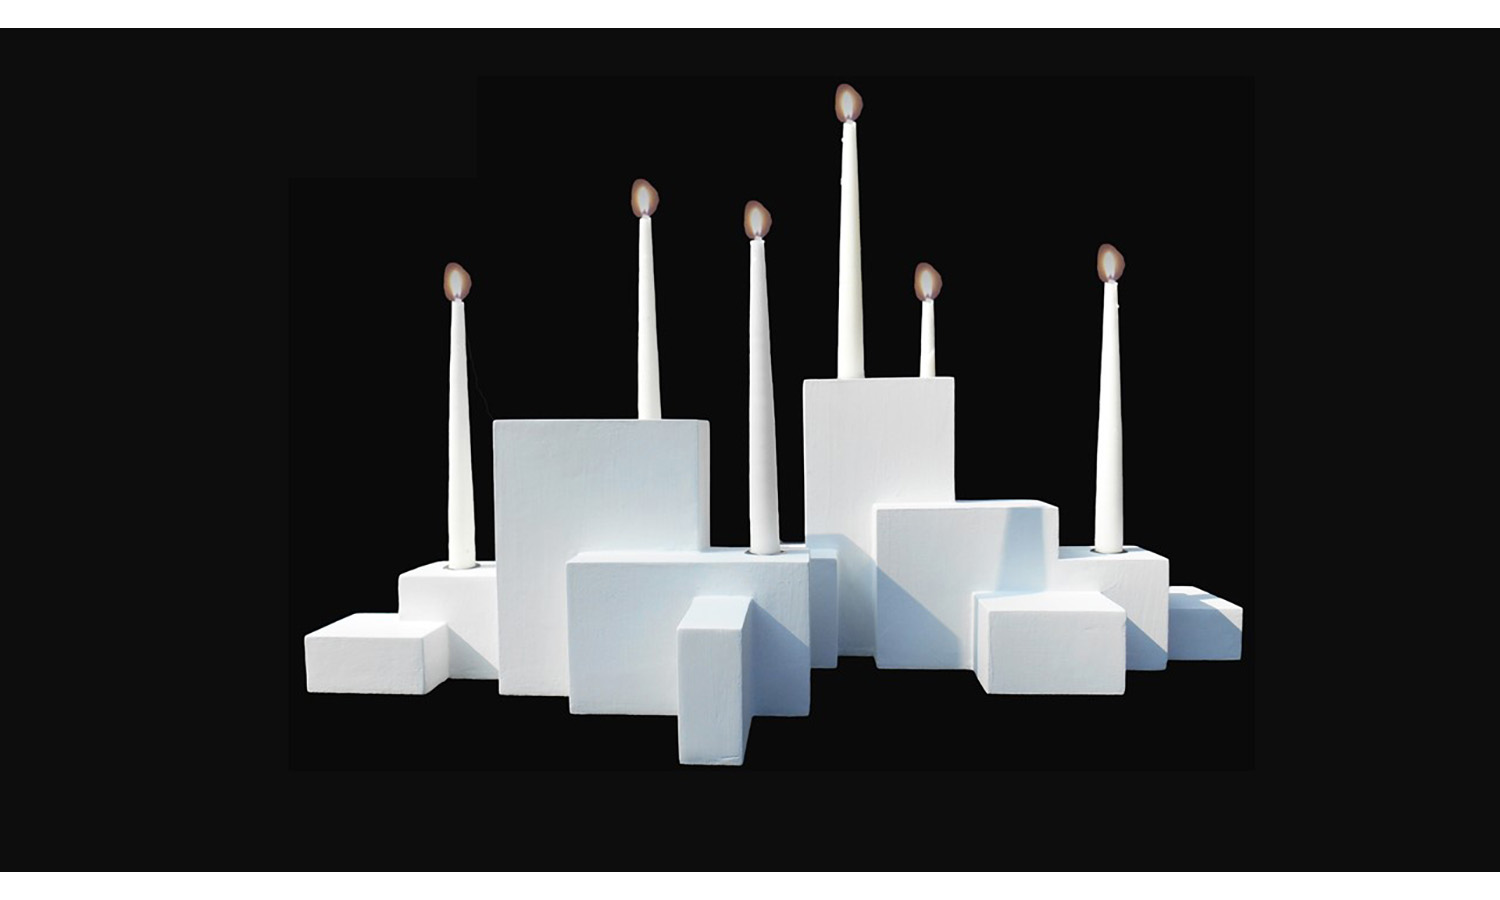 CANDLE HOLDERS (group of three shown), mixed media, sizes vary, 2017